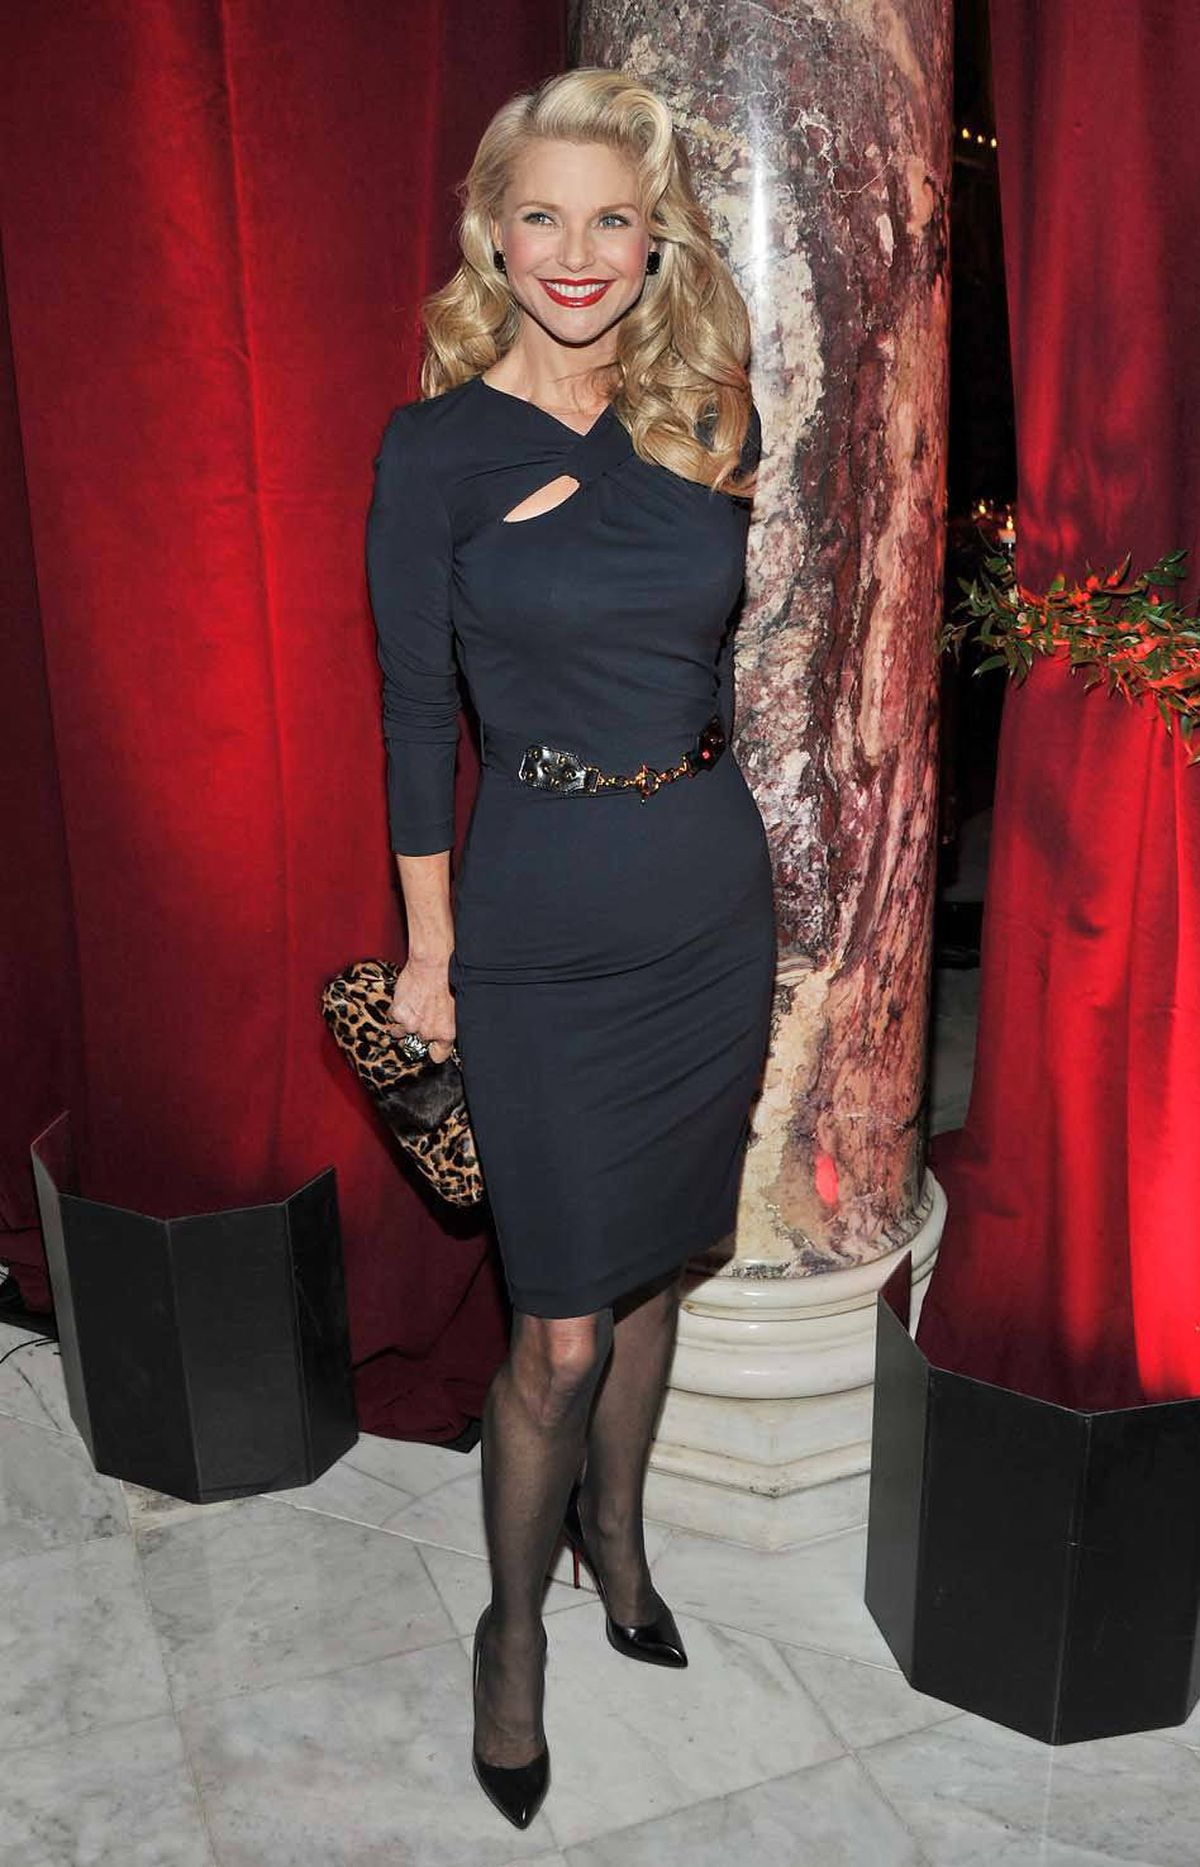 """Model/actress Christie Brinkley attends the after-party for the premiere of """"The Ides of March"""" in New York City last week."""